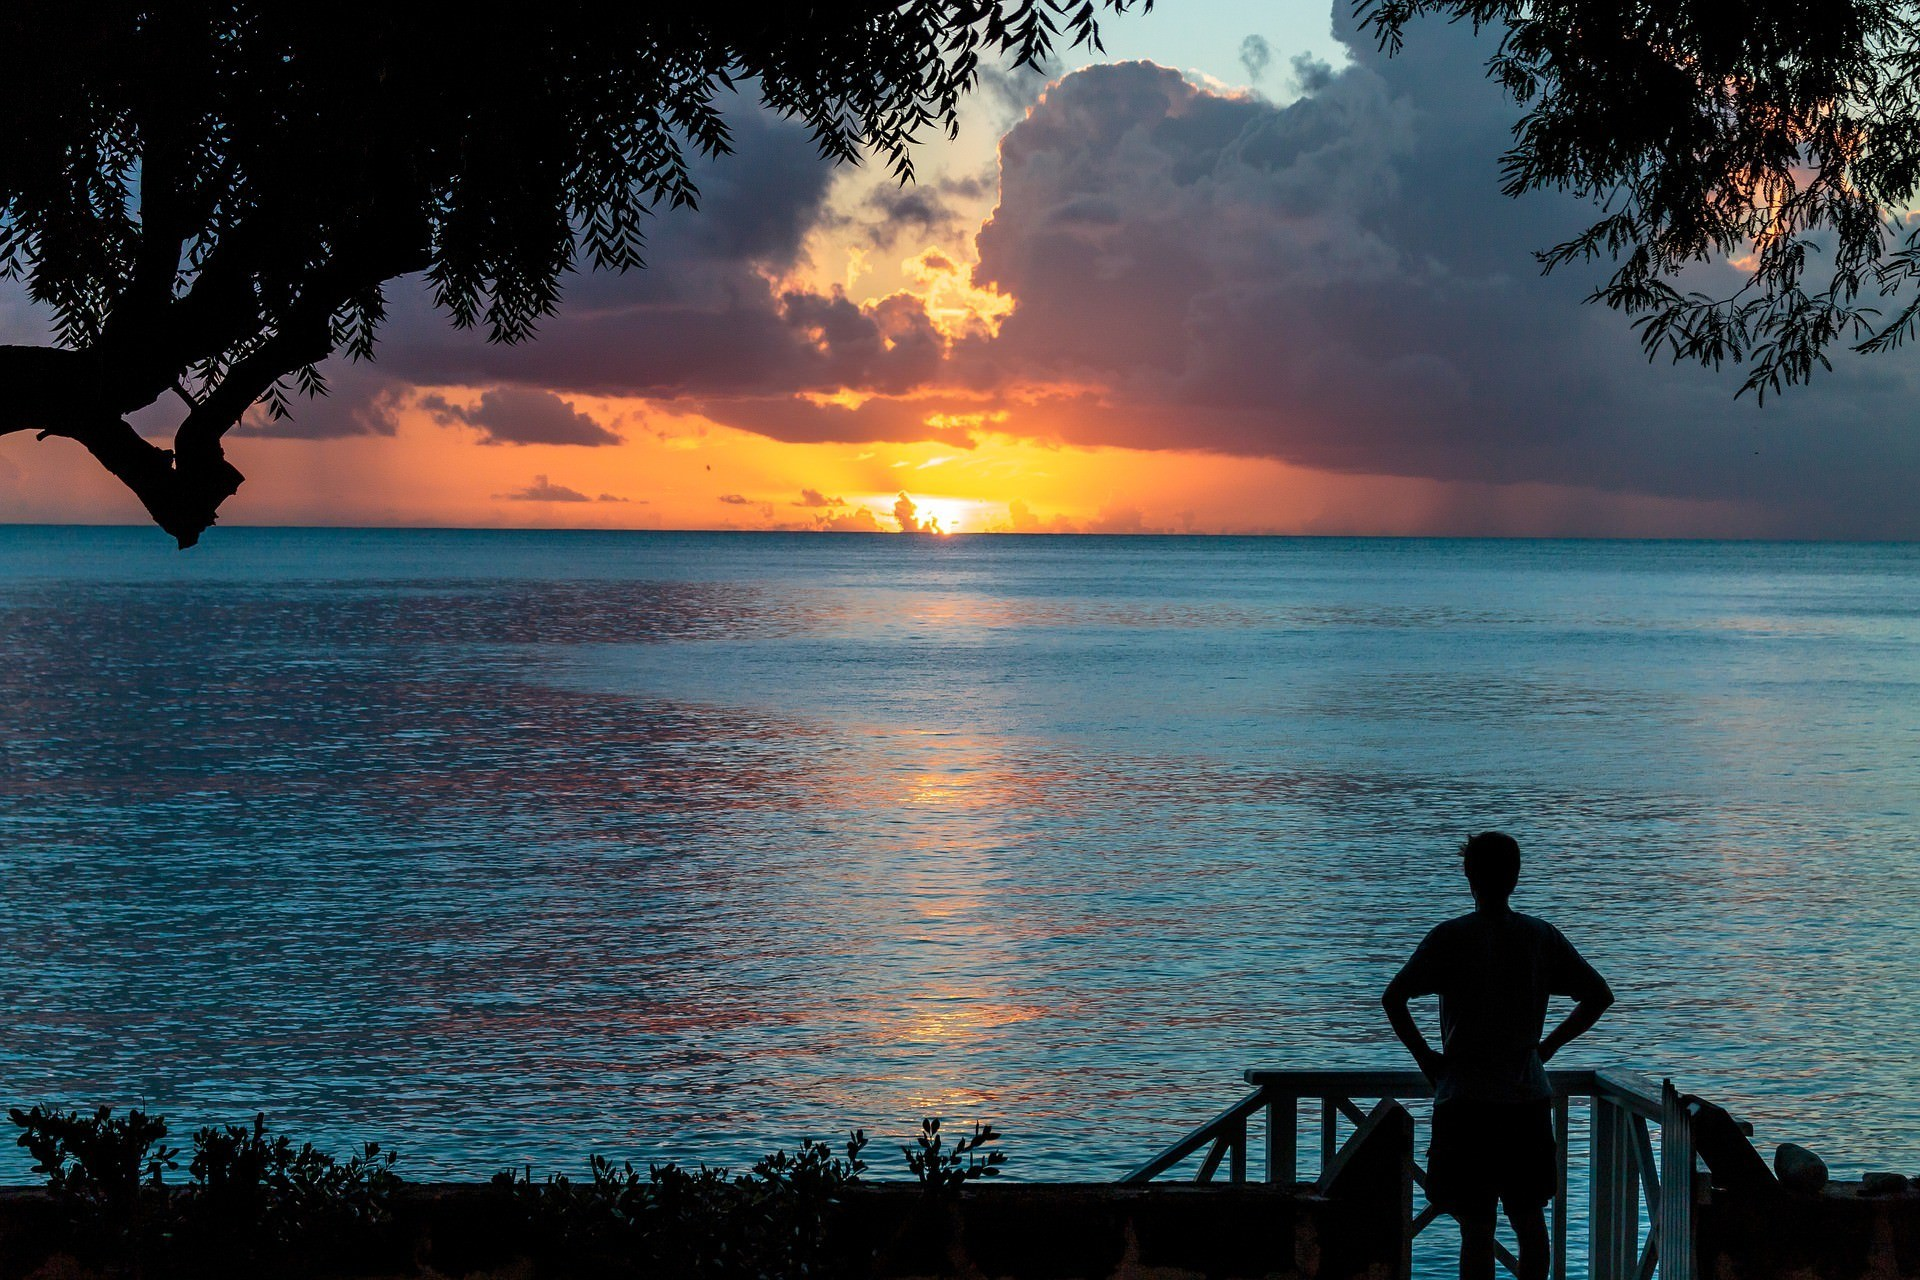 Sunset over the Atlantic in Barbados